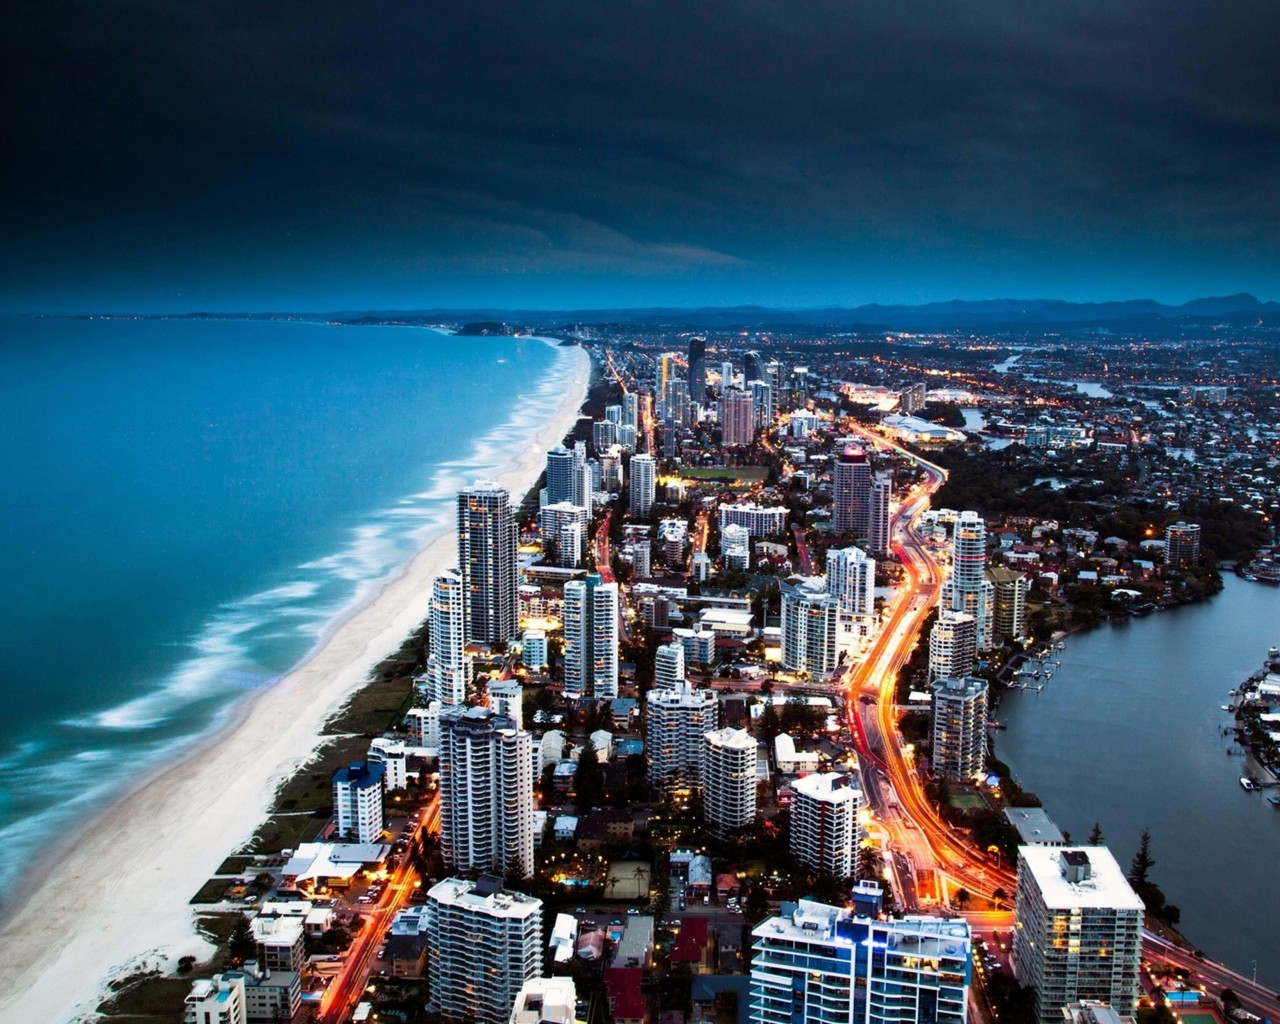 Gold Coast City in Queensland, Australia Wallpaper for Desktop 1280x1024